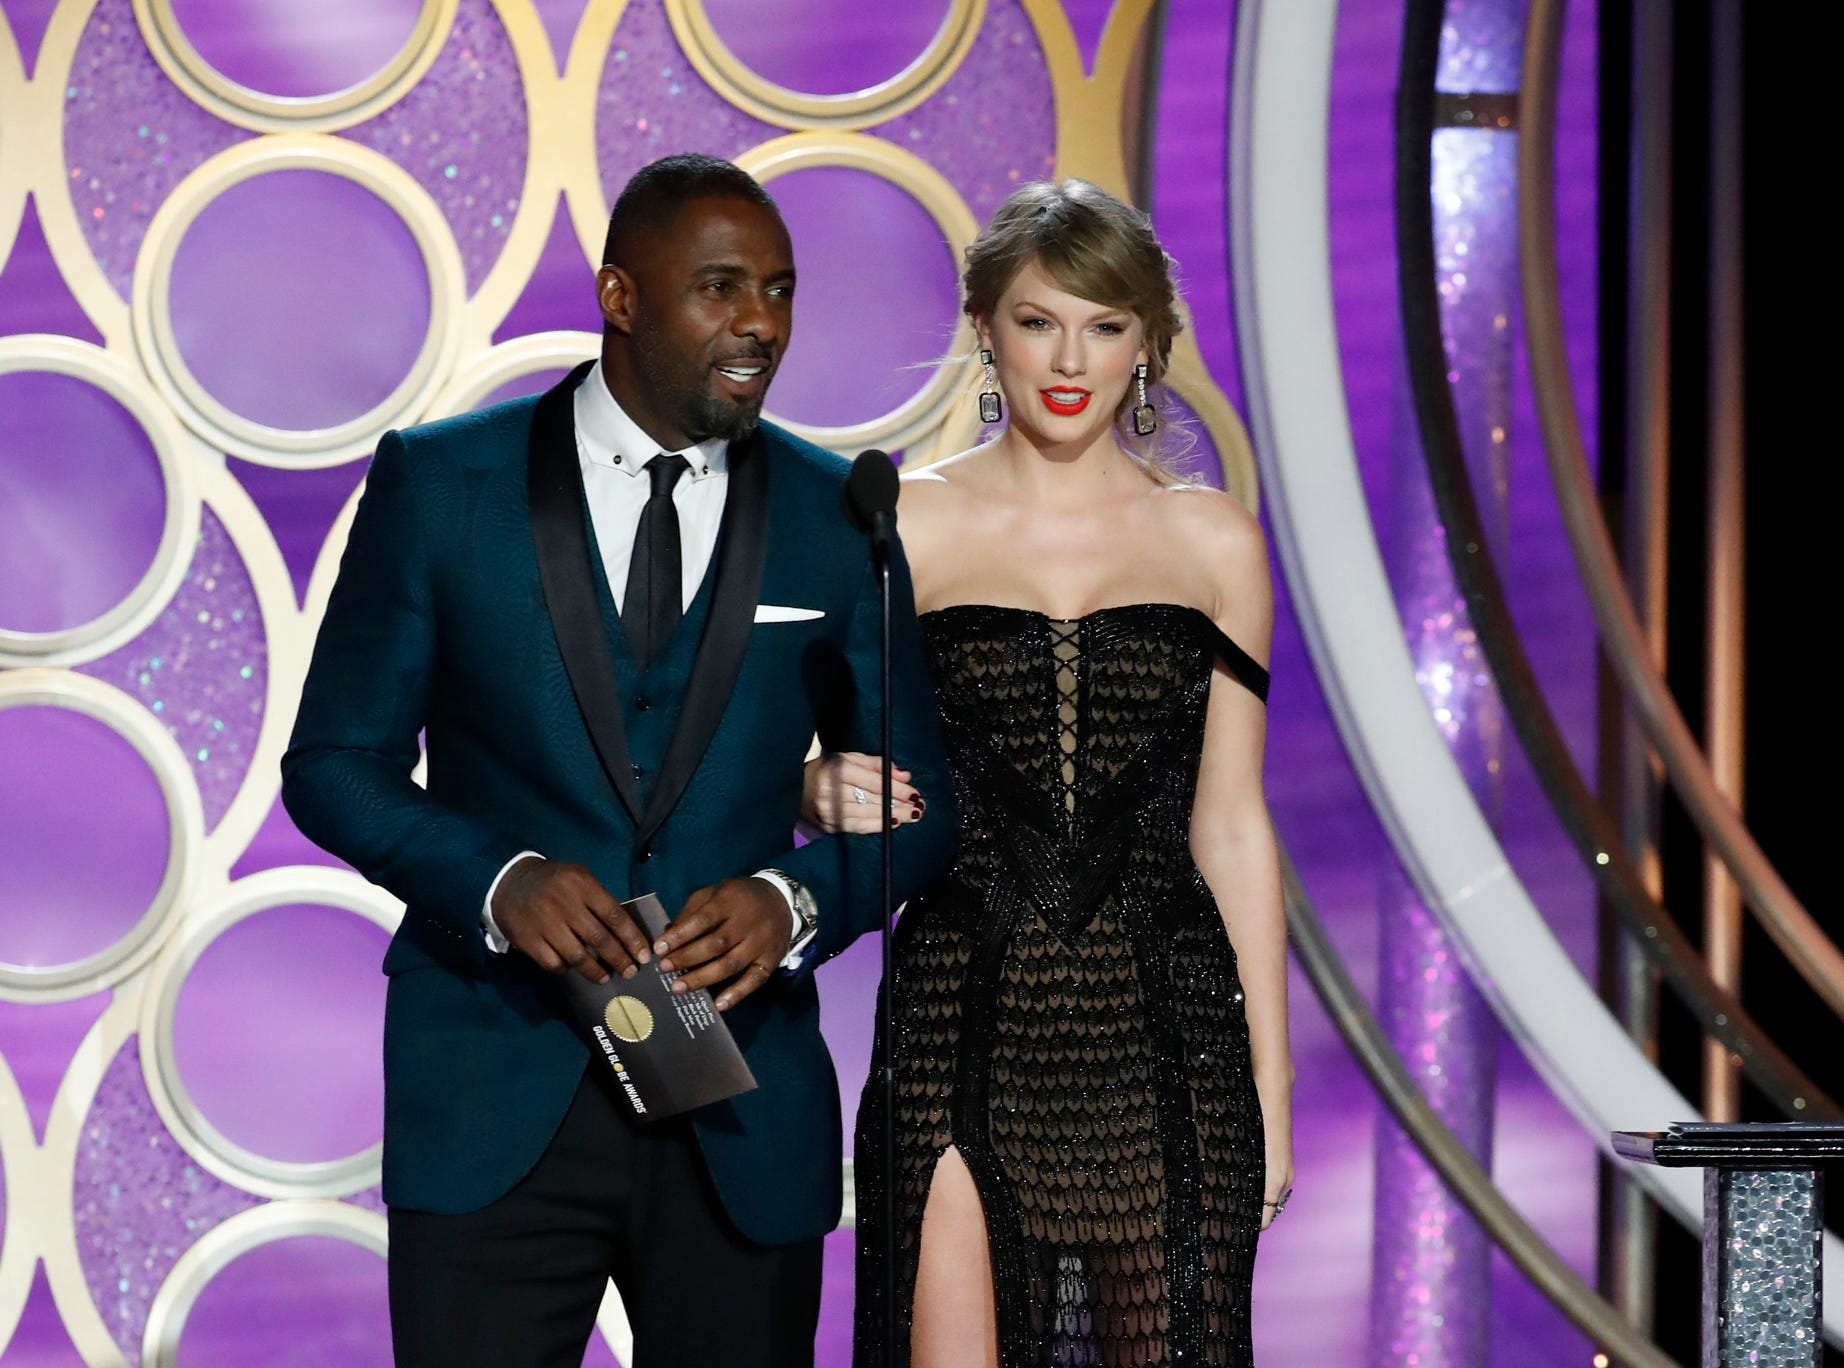 This image released by NBC shows presenters Idris Elba and Taylor Swift during the 76th Annual Golden Globe Awards at the Beverly Hilton Hotel.